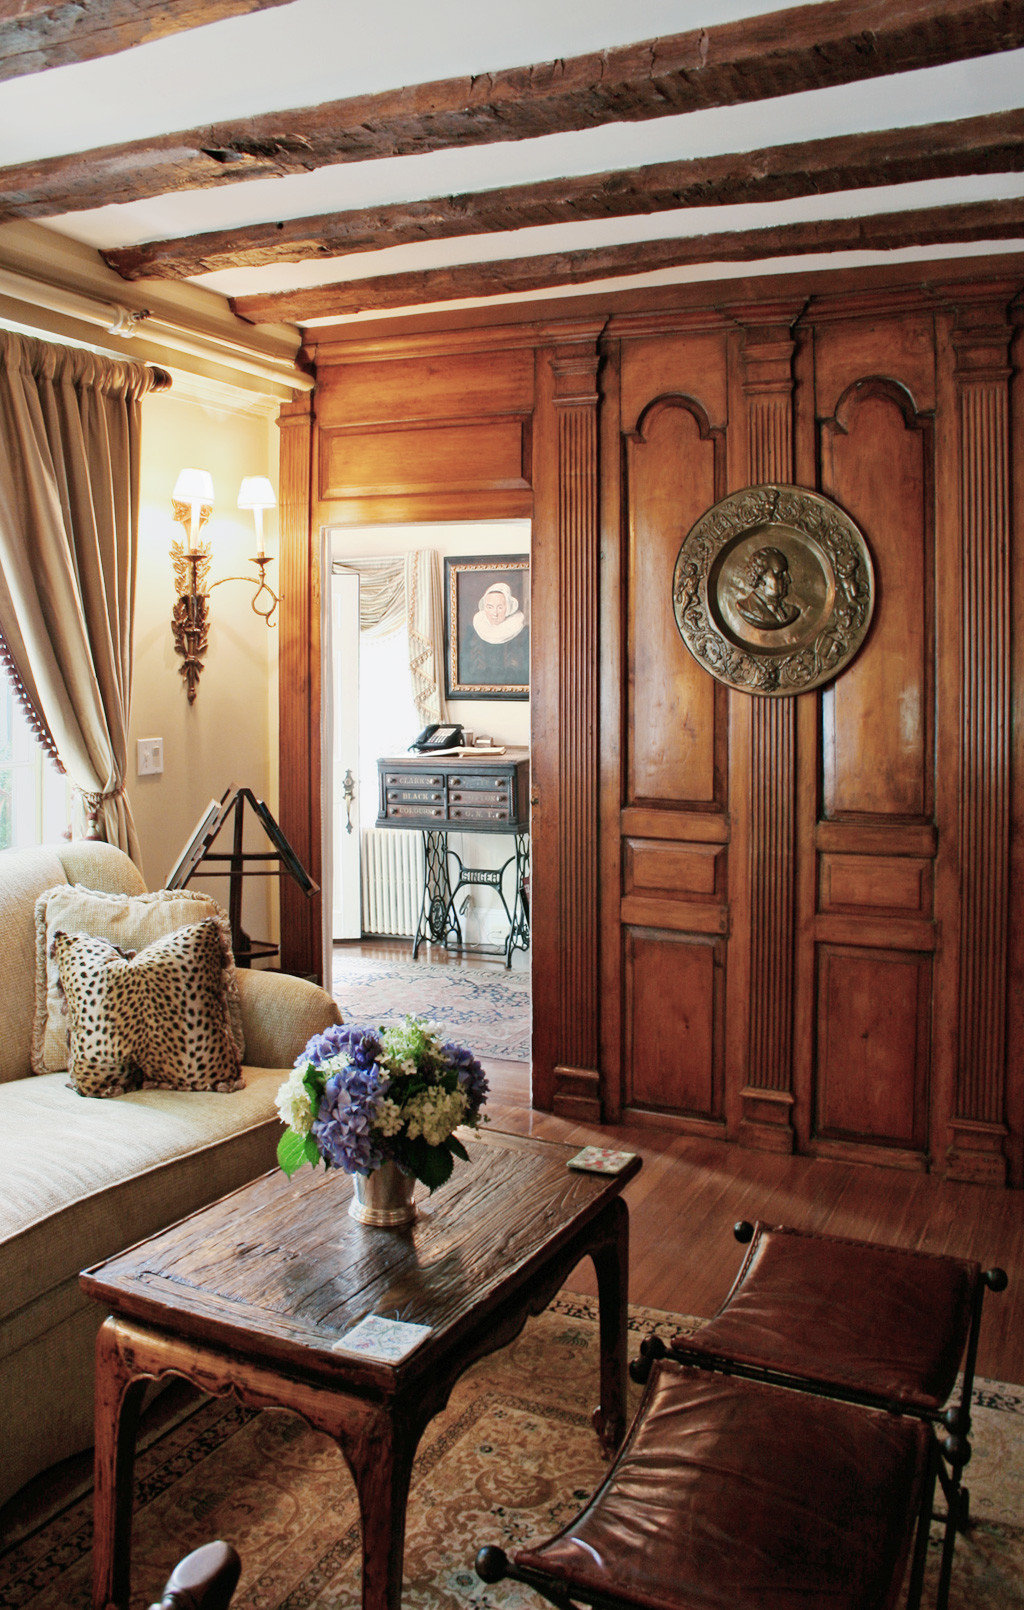 Beach Boutique Historic Inn Romance Romantic living room home hardwood cabinetry wooden mansion